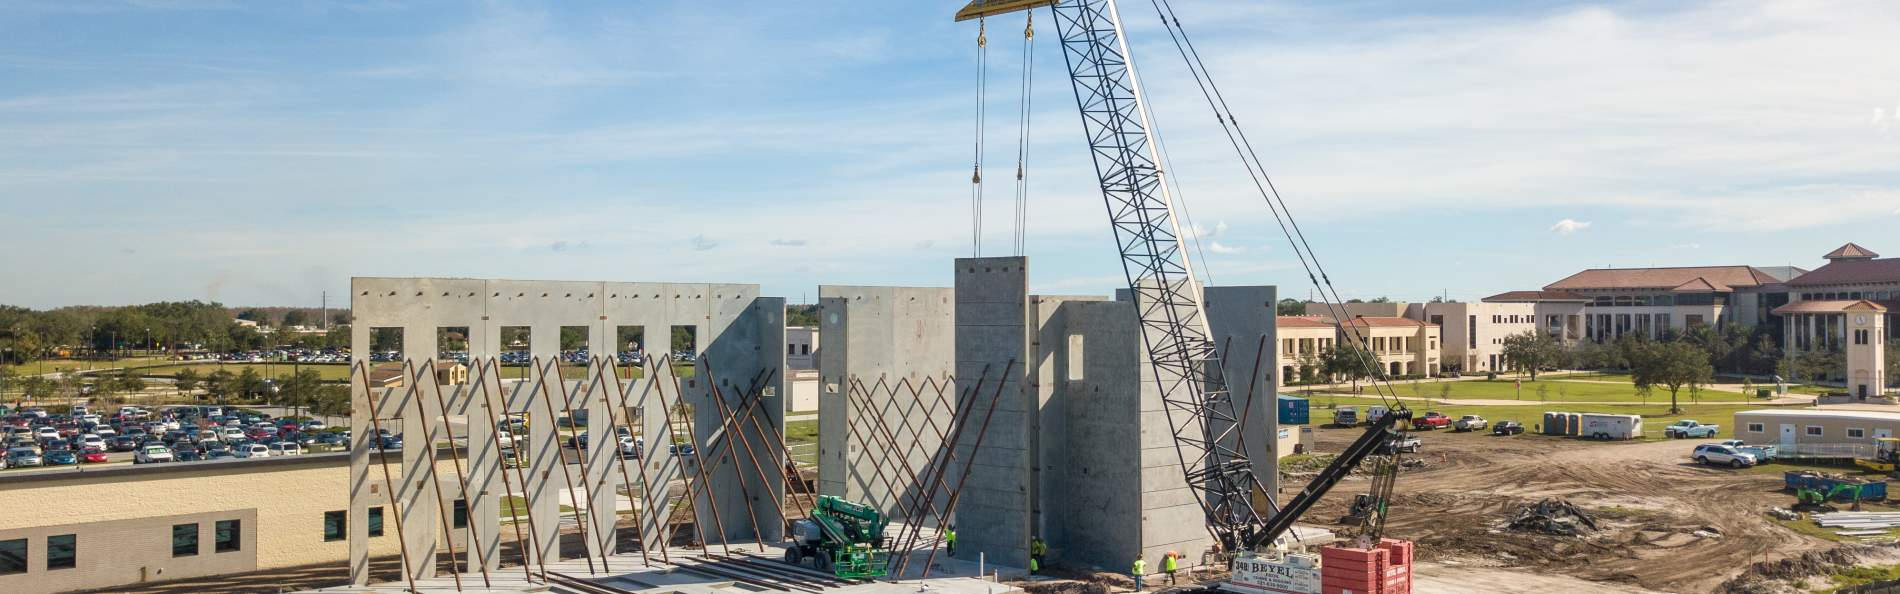 Construction of the CIT building on the Osceola campus on January 8, 2019 in Kissimmee, Fla.